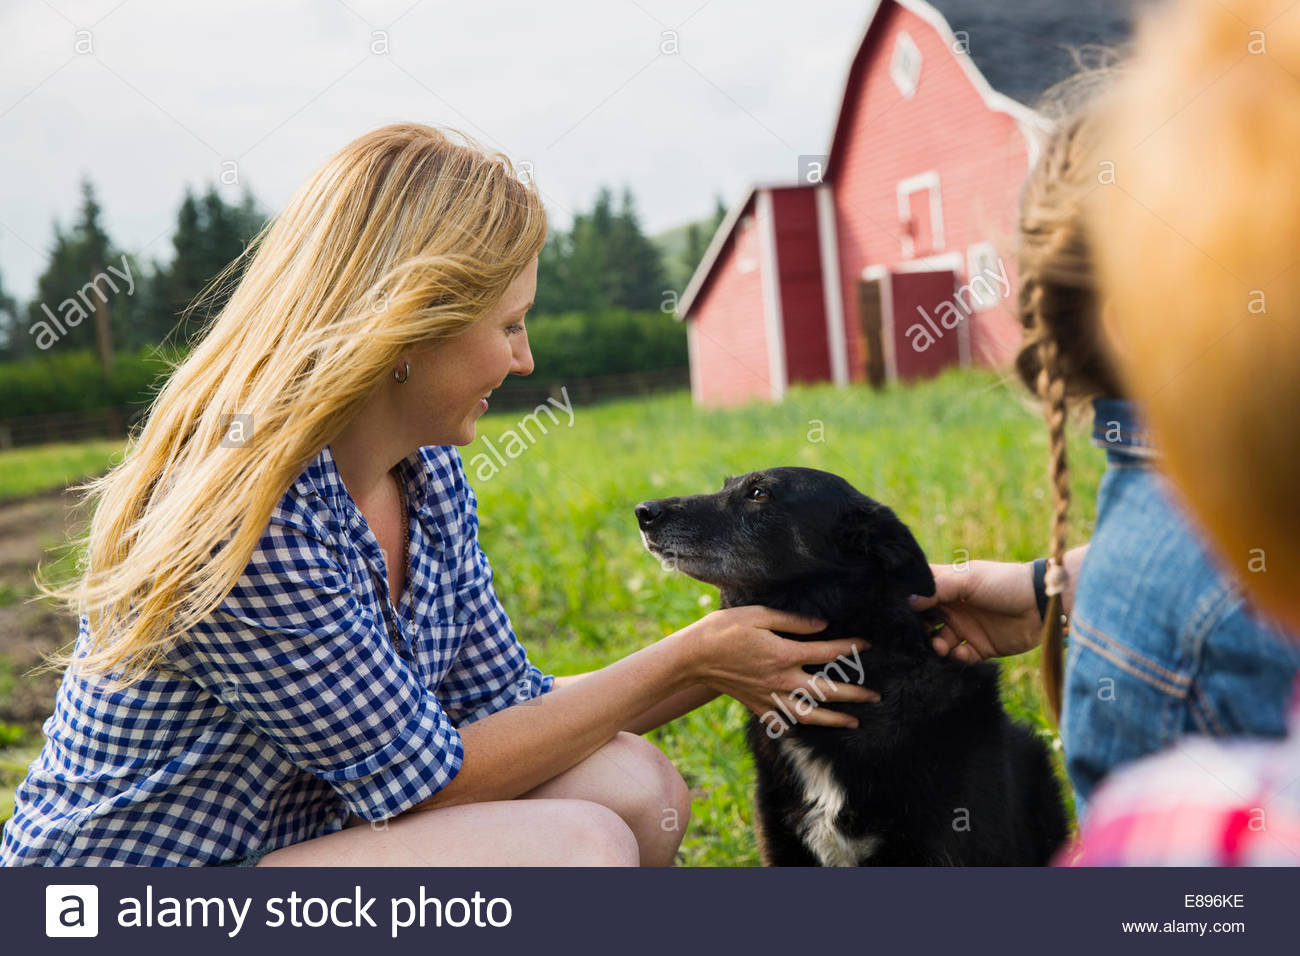 Woman petting dog outside barn - Stock Image